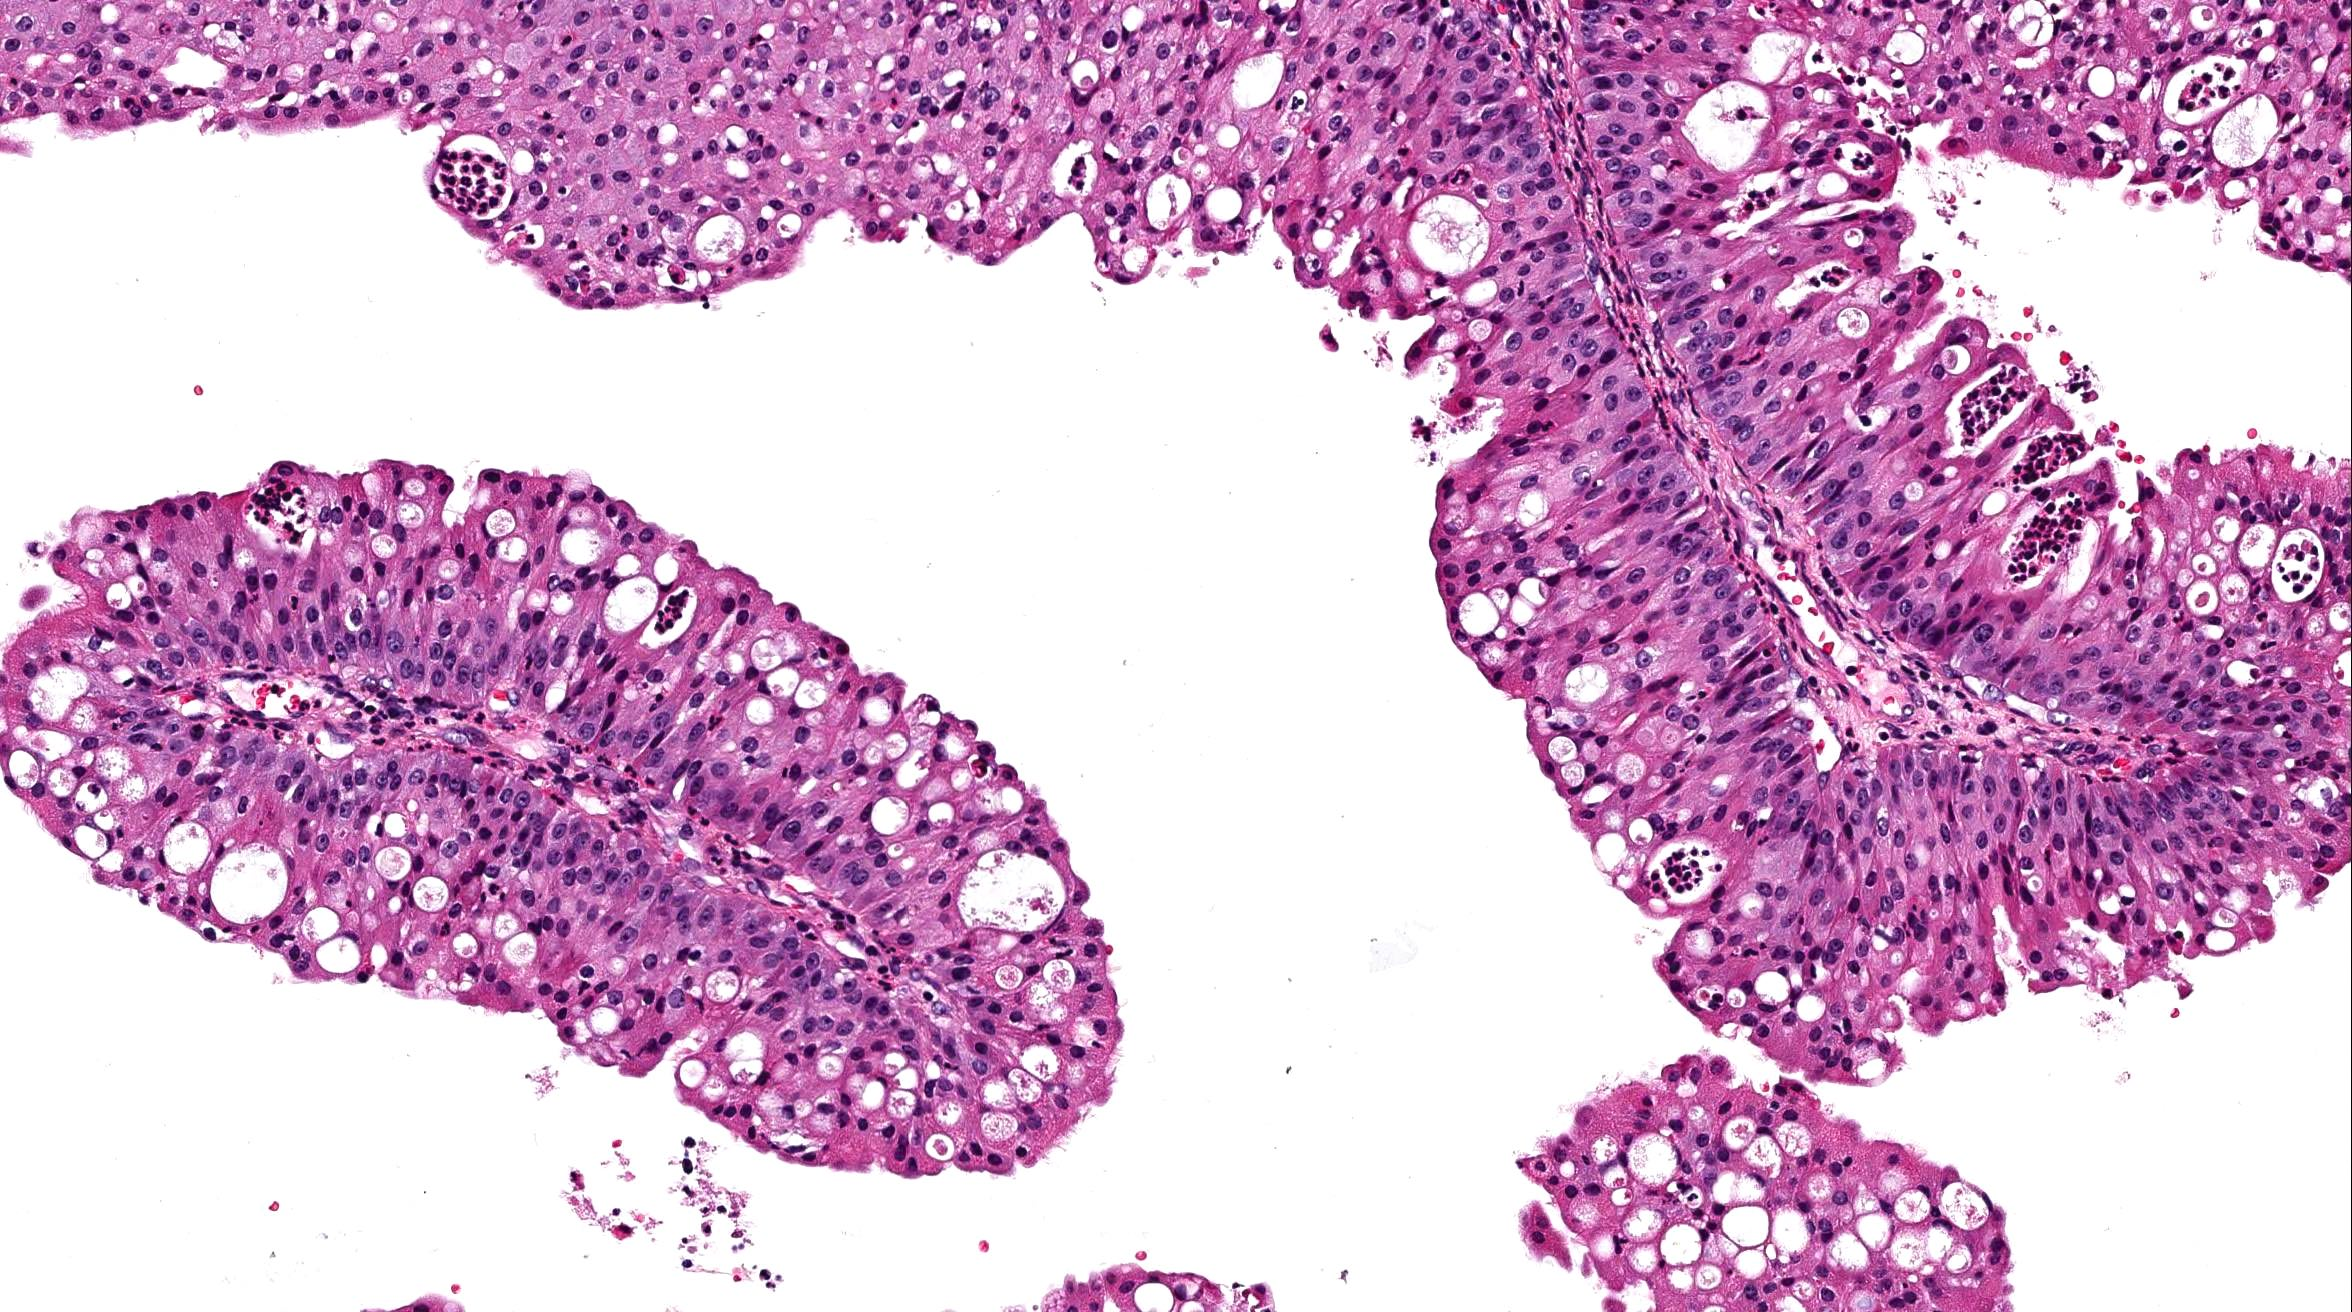 oncocytic papilloma nasal hpv neck lump